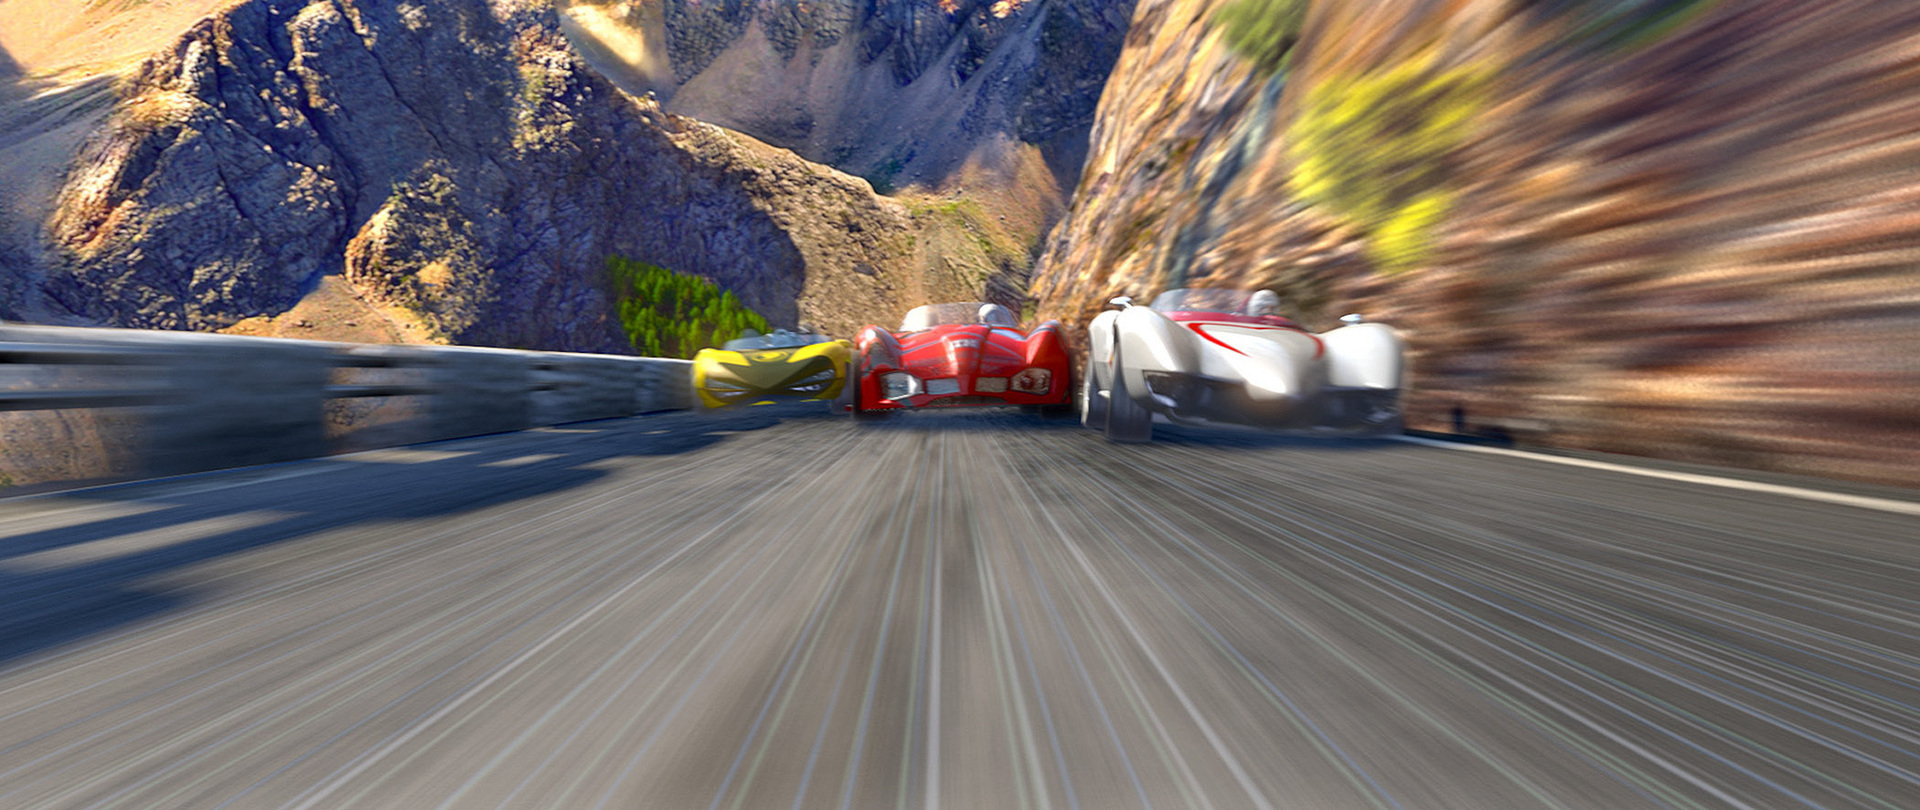 speed racer images speed racer movie stills hd wallpaper and